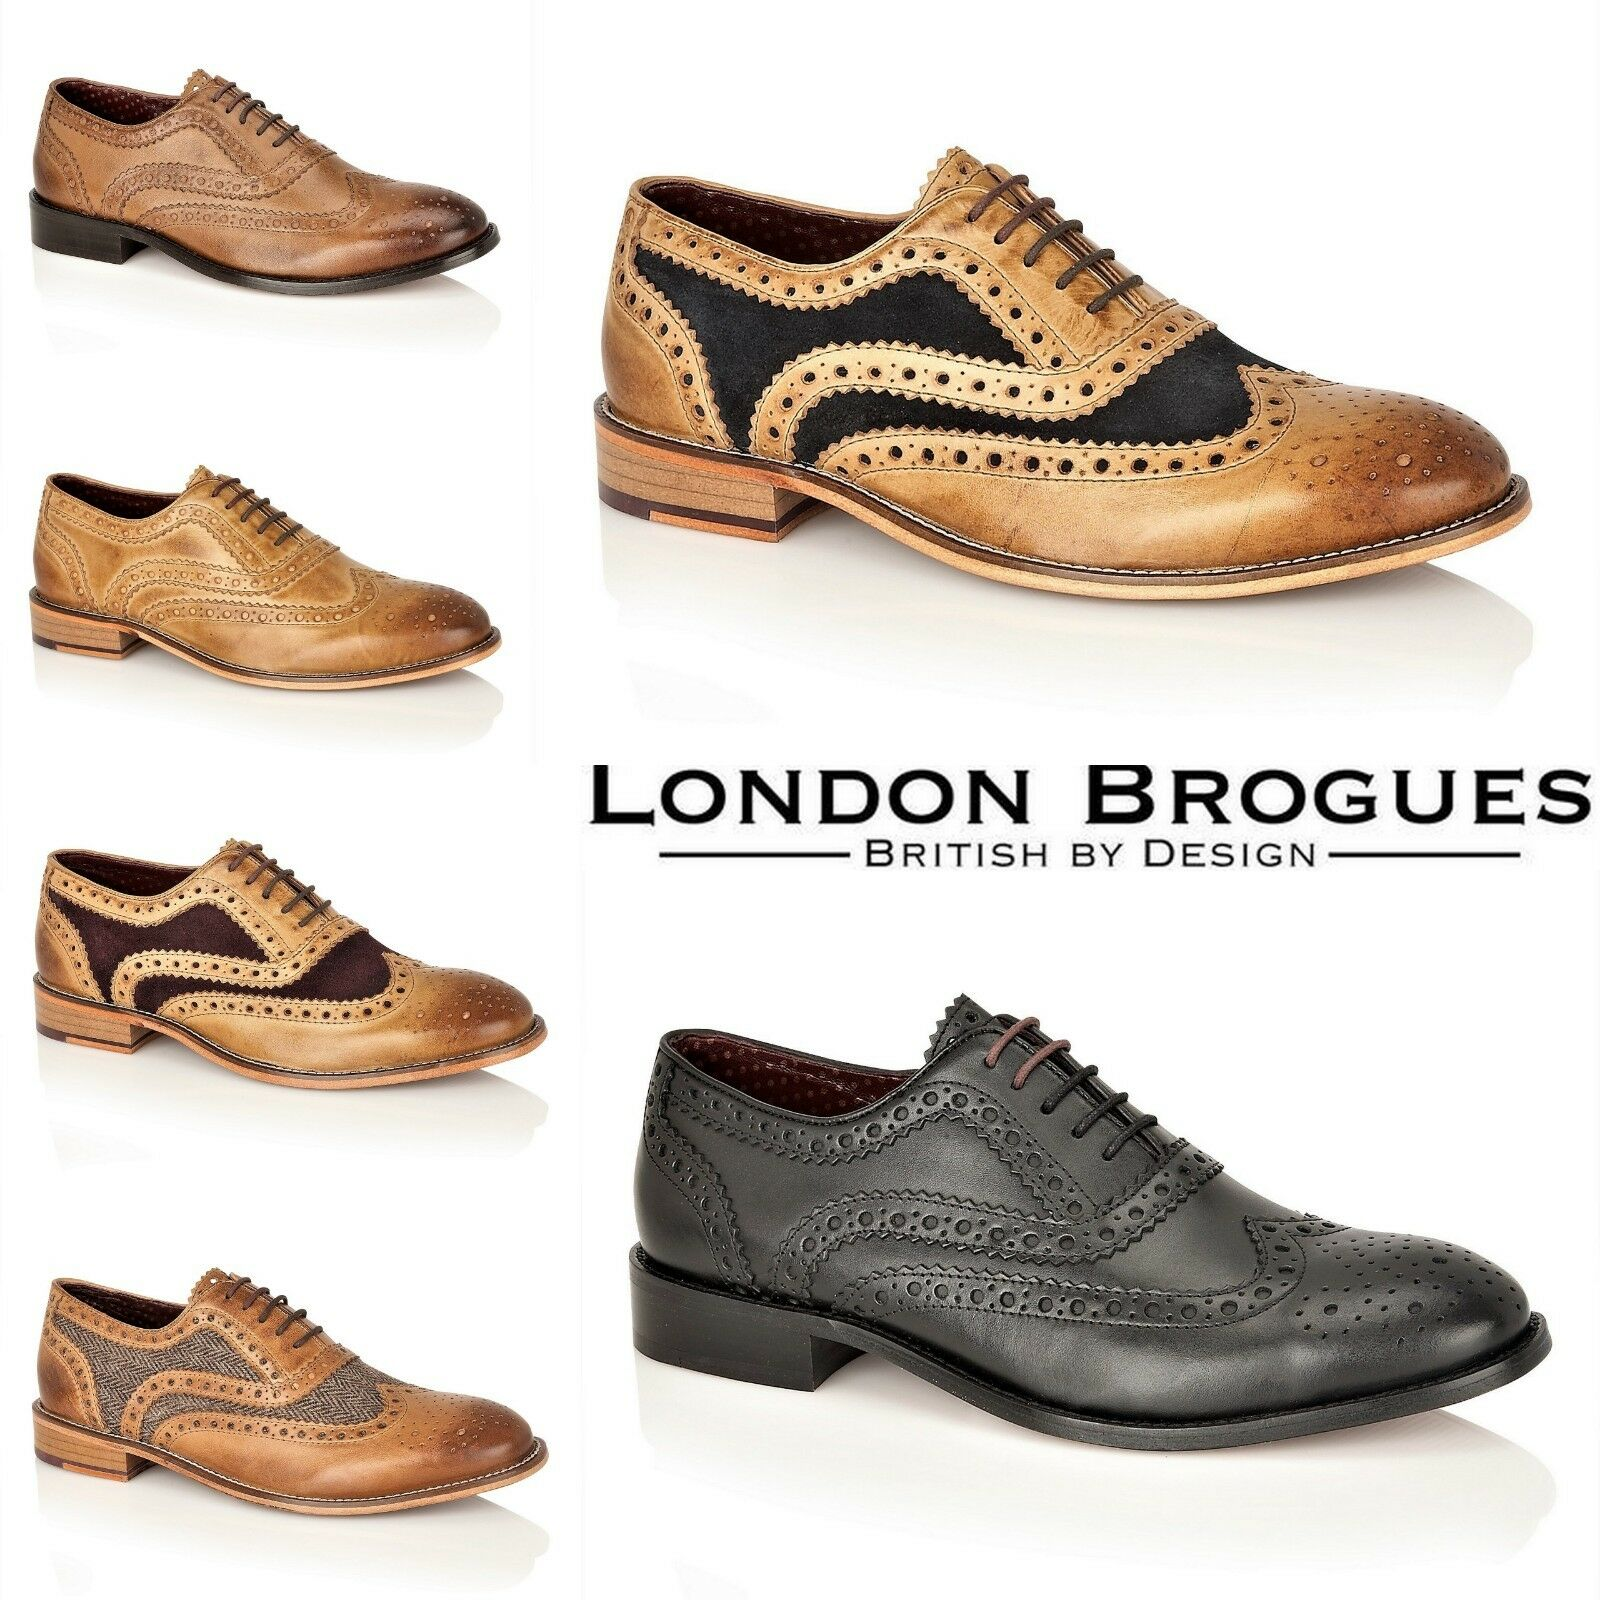 London Brogues New Mens Full Leather Brogues 5 Eye Lace Up  Watson Smart shoes